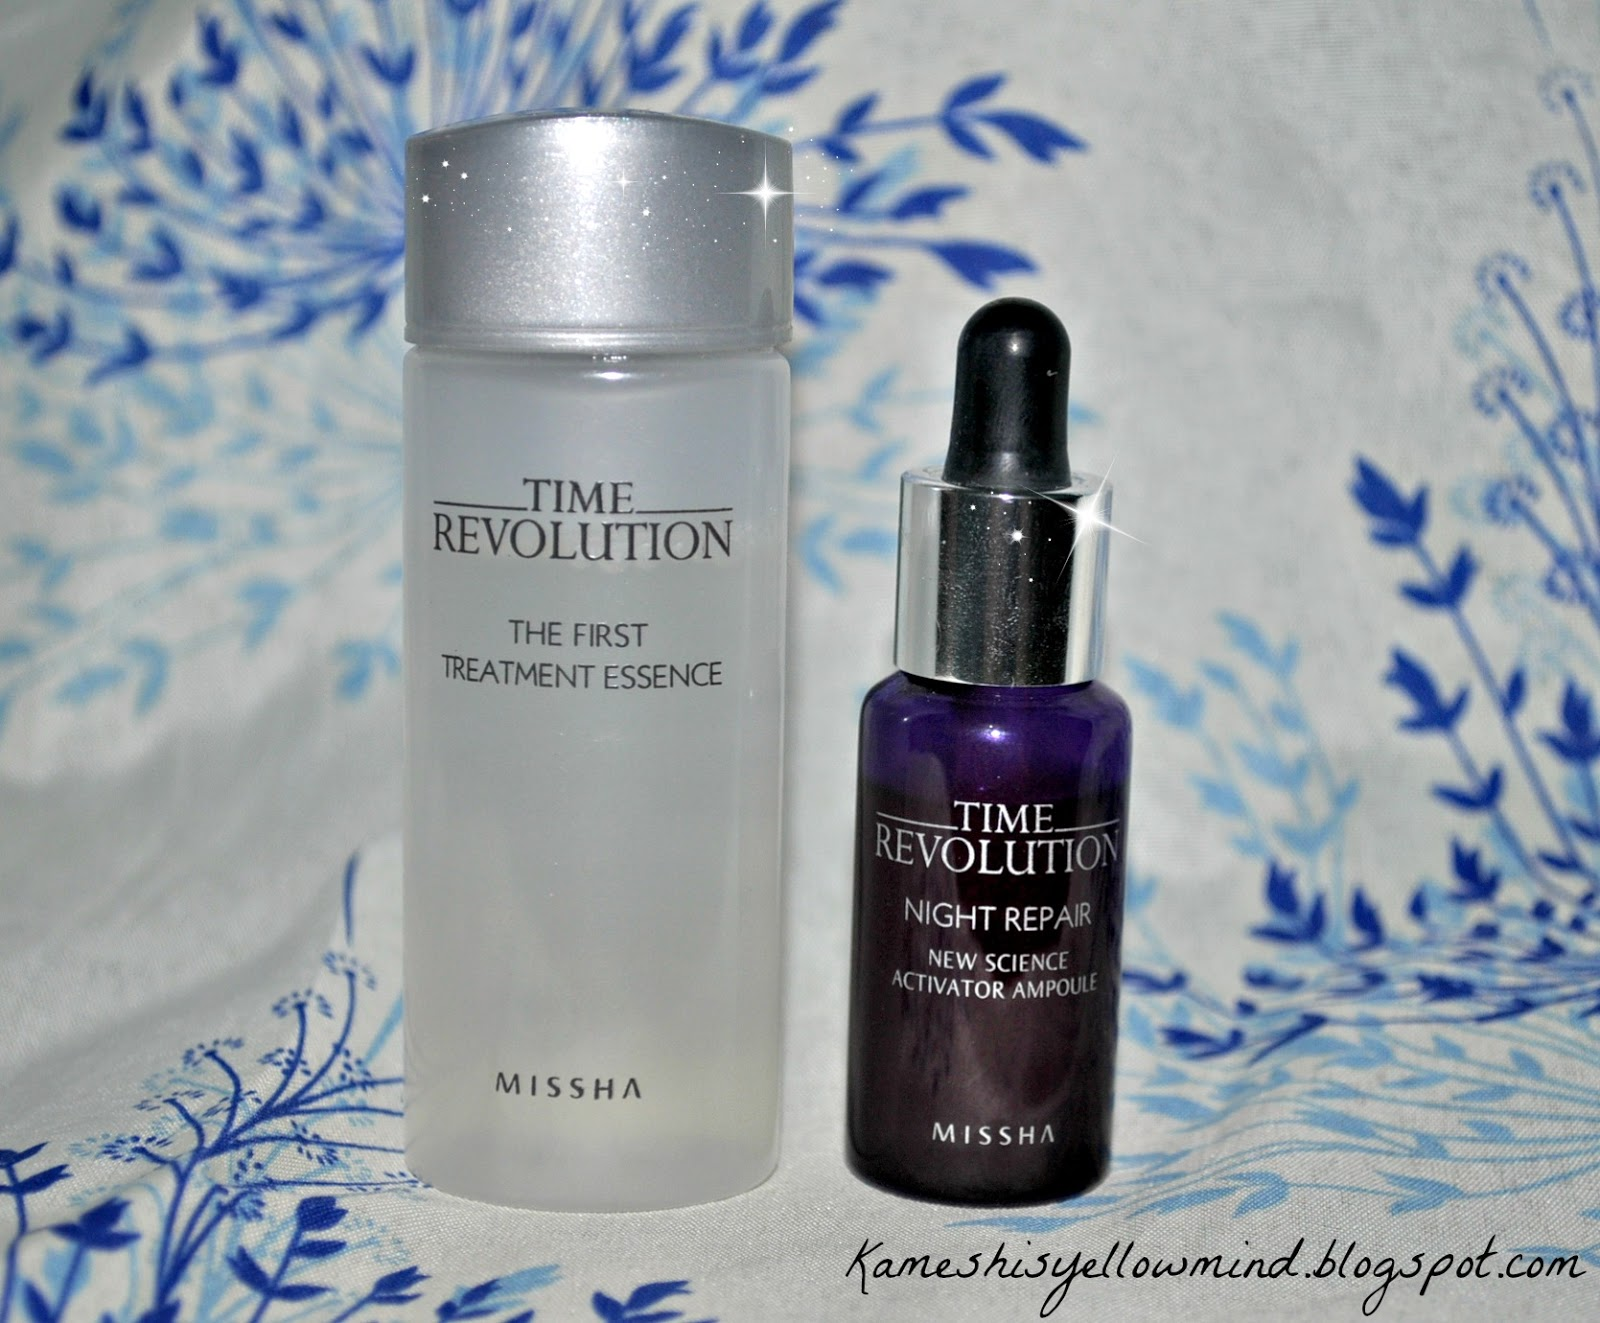 Kameshis Yellow Mind Missha Time Revolution Trial Set First The Treatment Essence And Night Repair Review